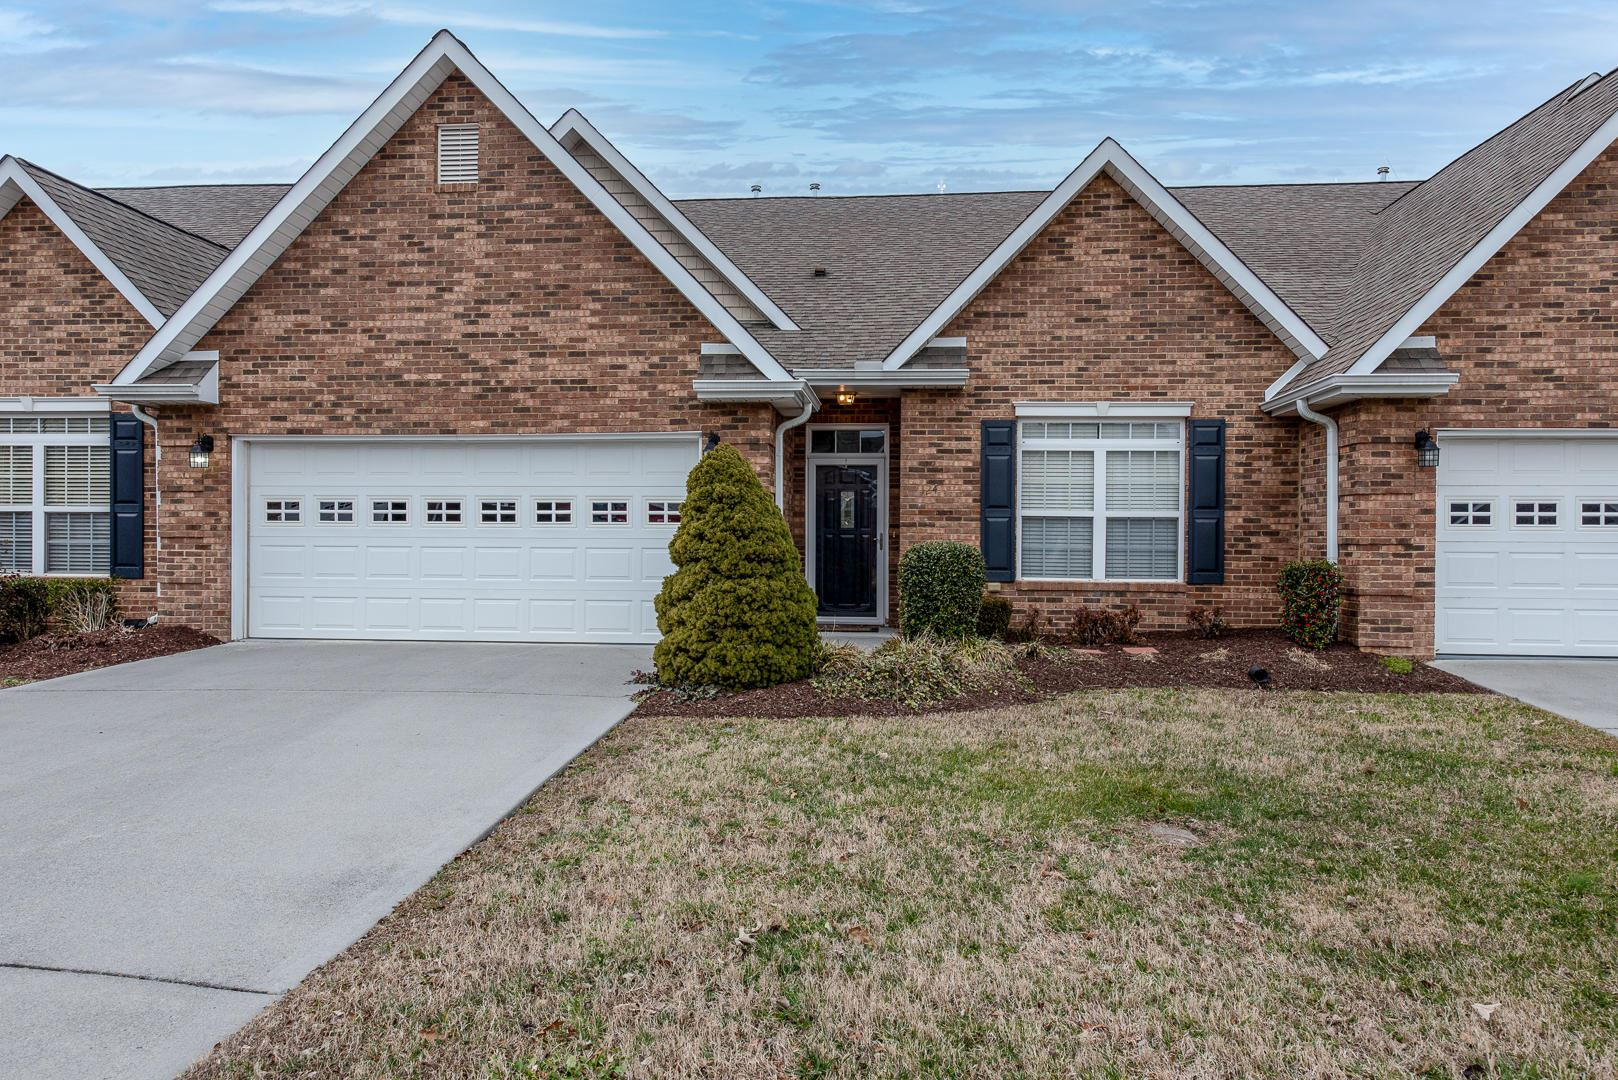 Photo of 124 River Garden Court, Sevierville, TN 37862 (MLS # 1140663)